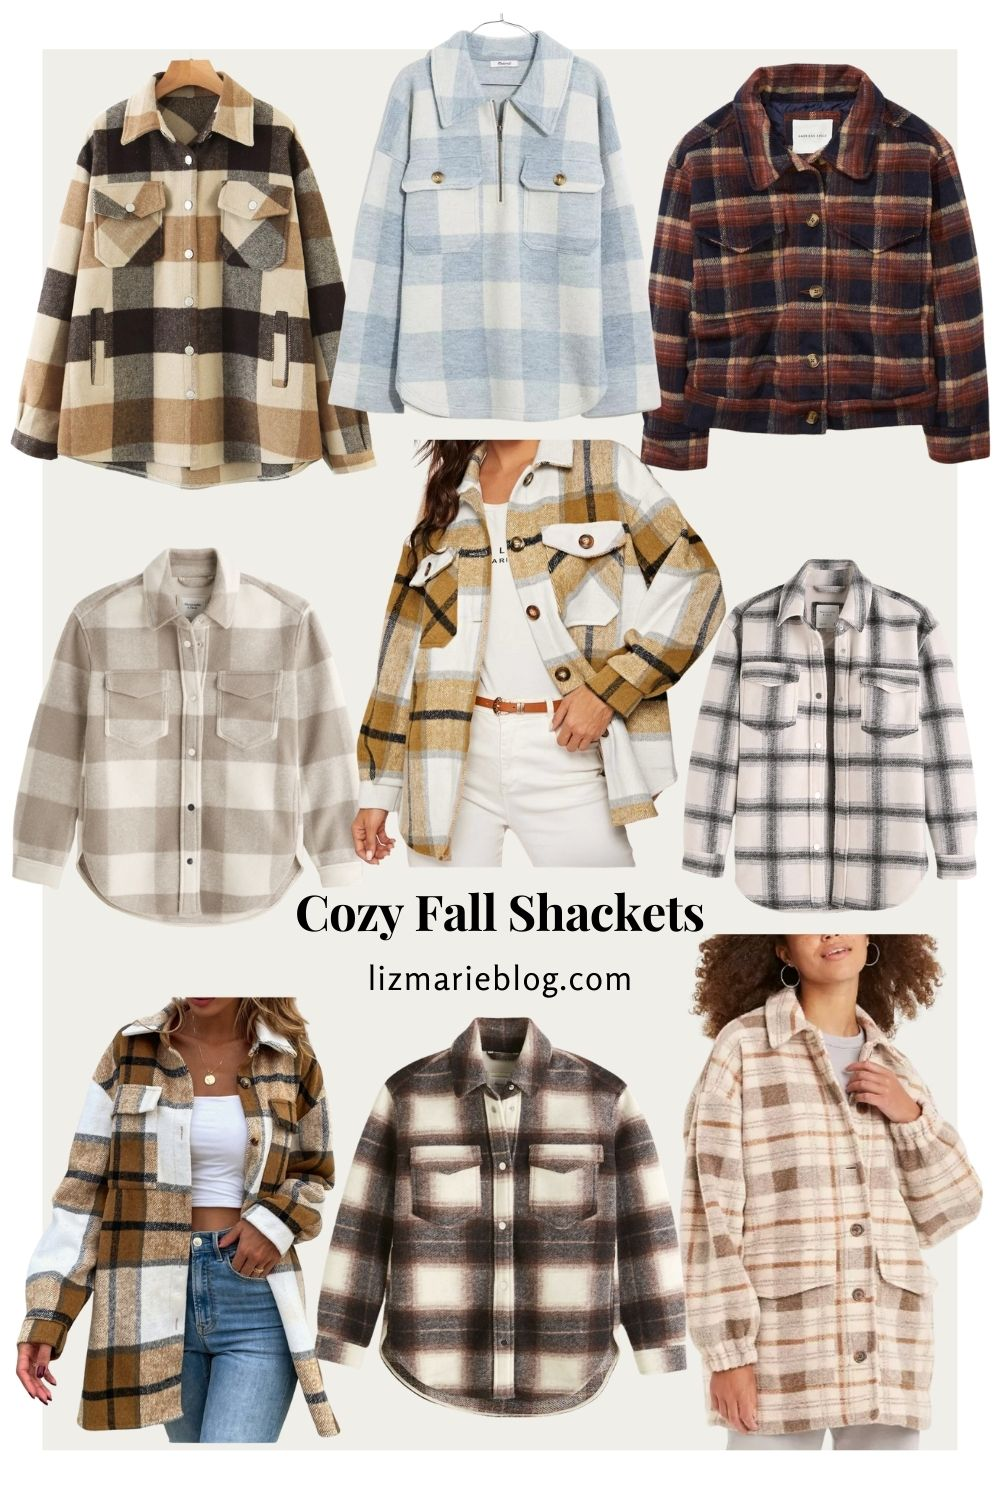 Cozy Fall Shacket Finds